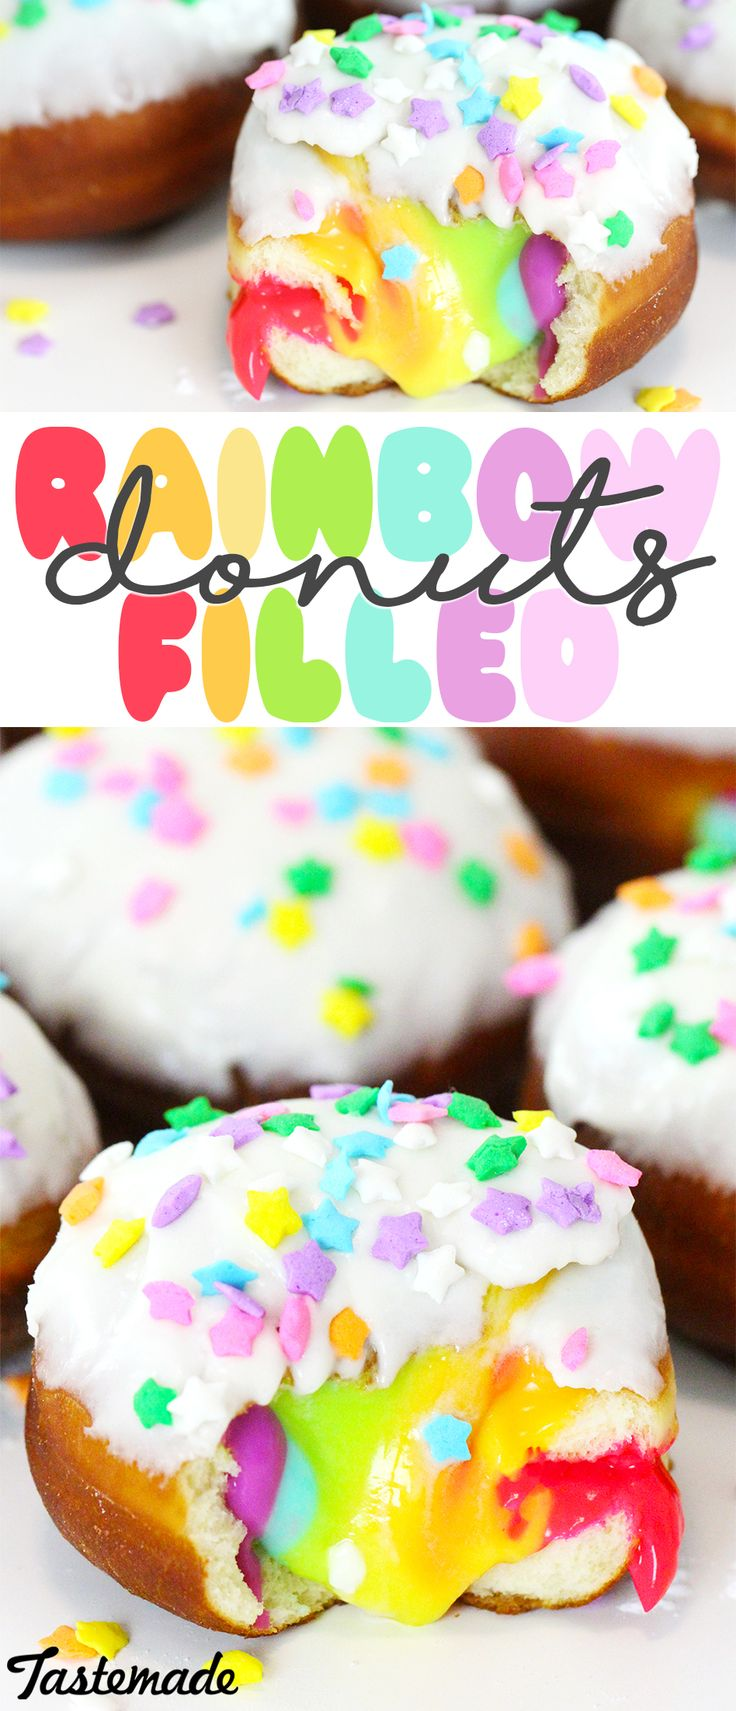 If you like vanilla cream-stuffed doughnuts, you'll love this colorful twist on a favorite.